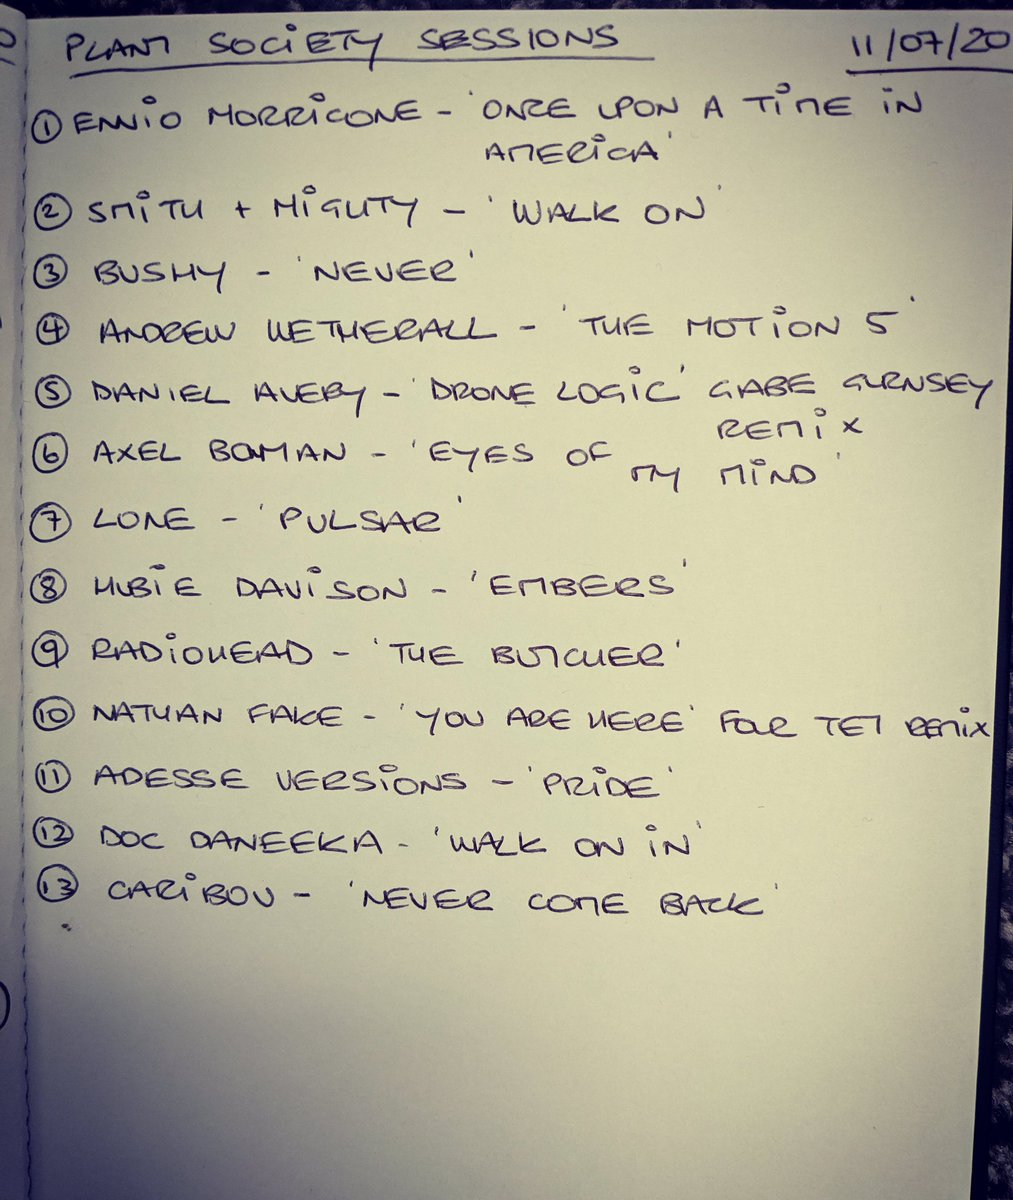 Thanks to everyone that joined the live stream last night. We had a blast, hope you enjoyed it too. Here's the setlist from the 2nd mix courtesy of @AJacobsArtist Thanks for listening and see you soon #djset #setlist #housemusic #Beatspic.twitter.com/Lic7AvKguQ